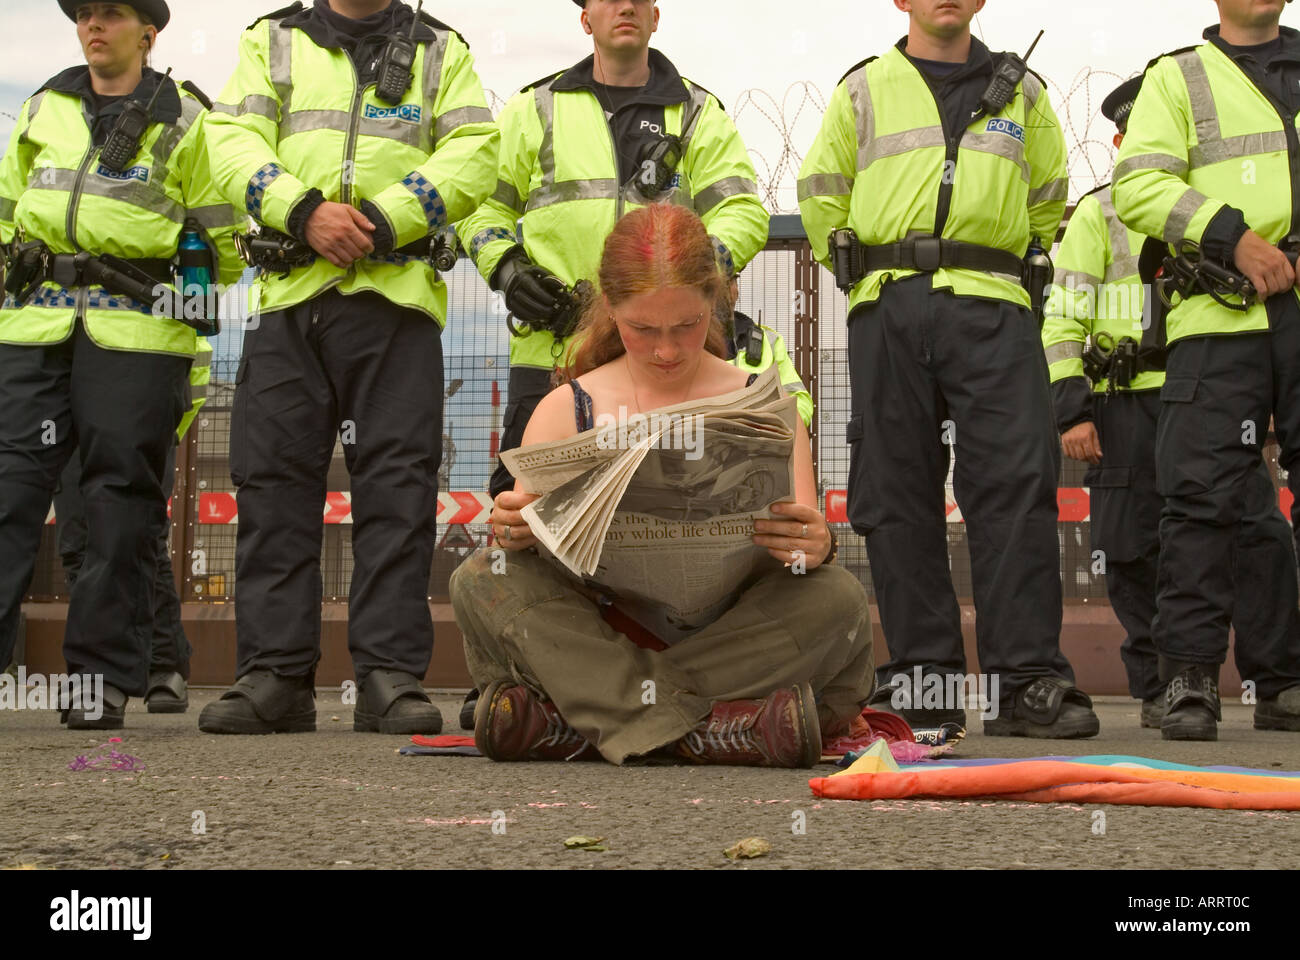 Lone protester reads a newspaper in front of police line at Faslane nuclear base. - Stock Image